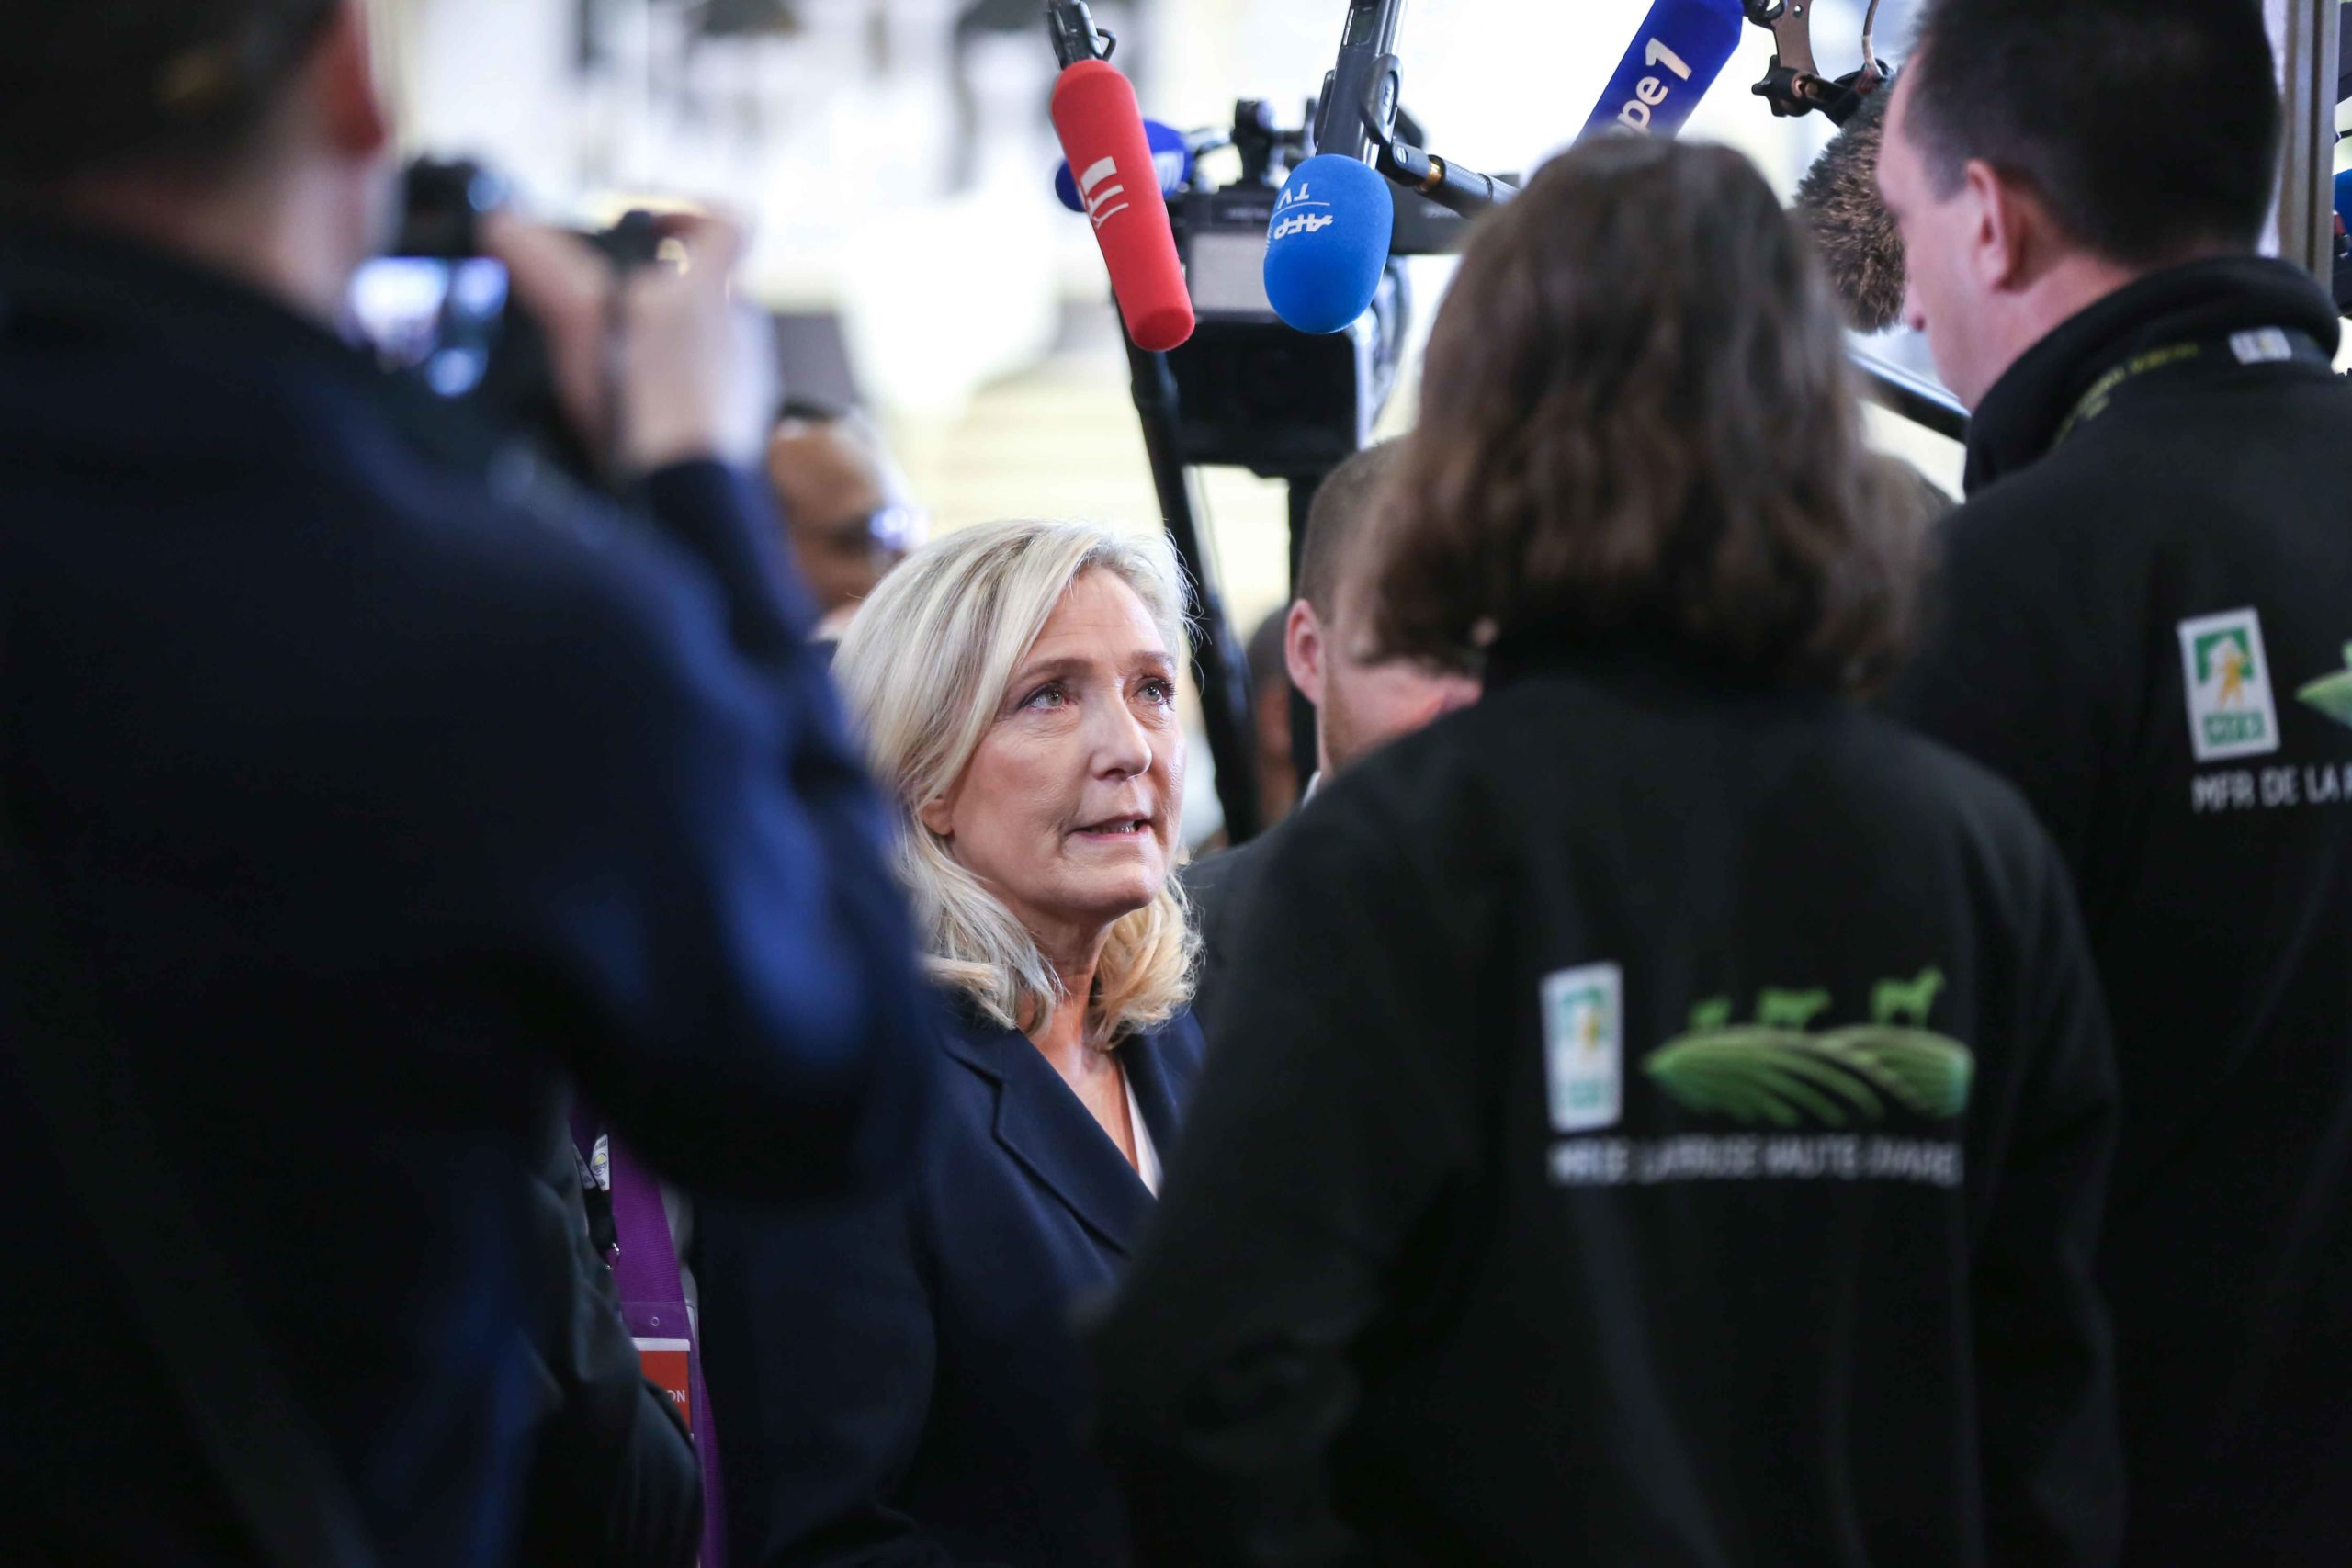 French member of Parliament and President of the far-right Rassemblement National (RN) party Marine Le Pen (C) visits the international Agriculture Fair in Paris on February 25, 2020.